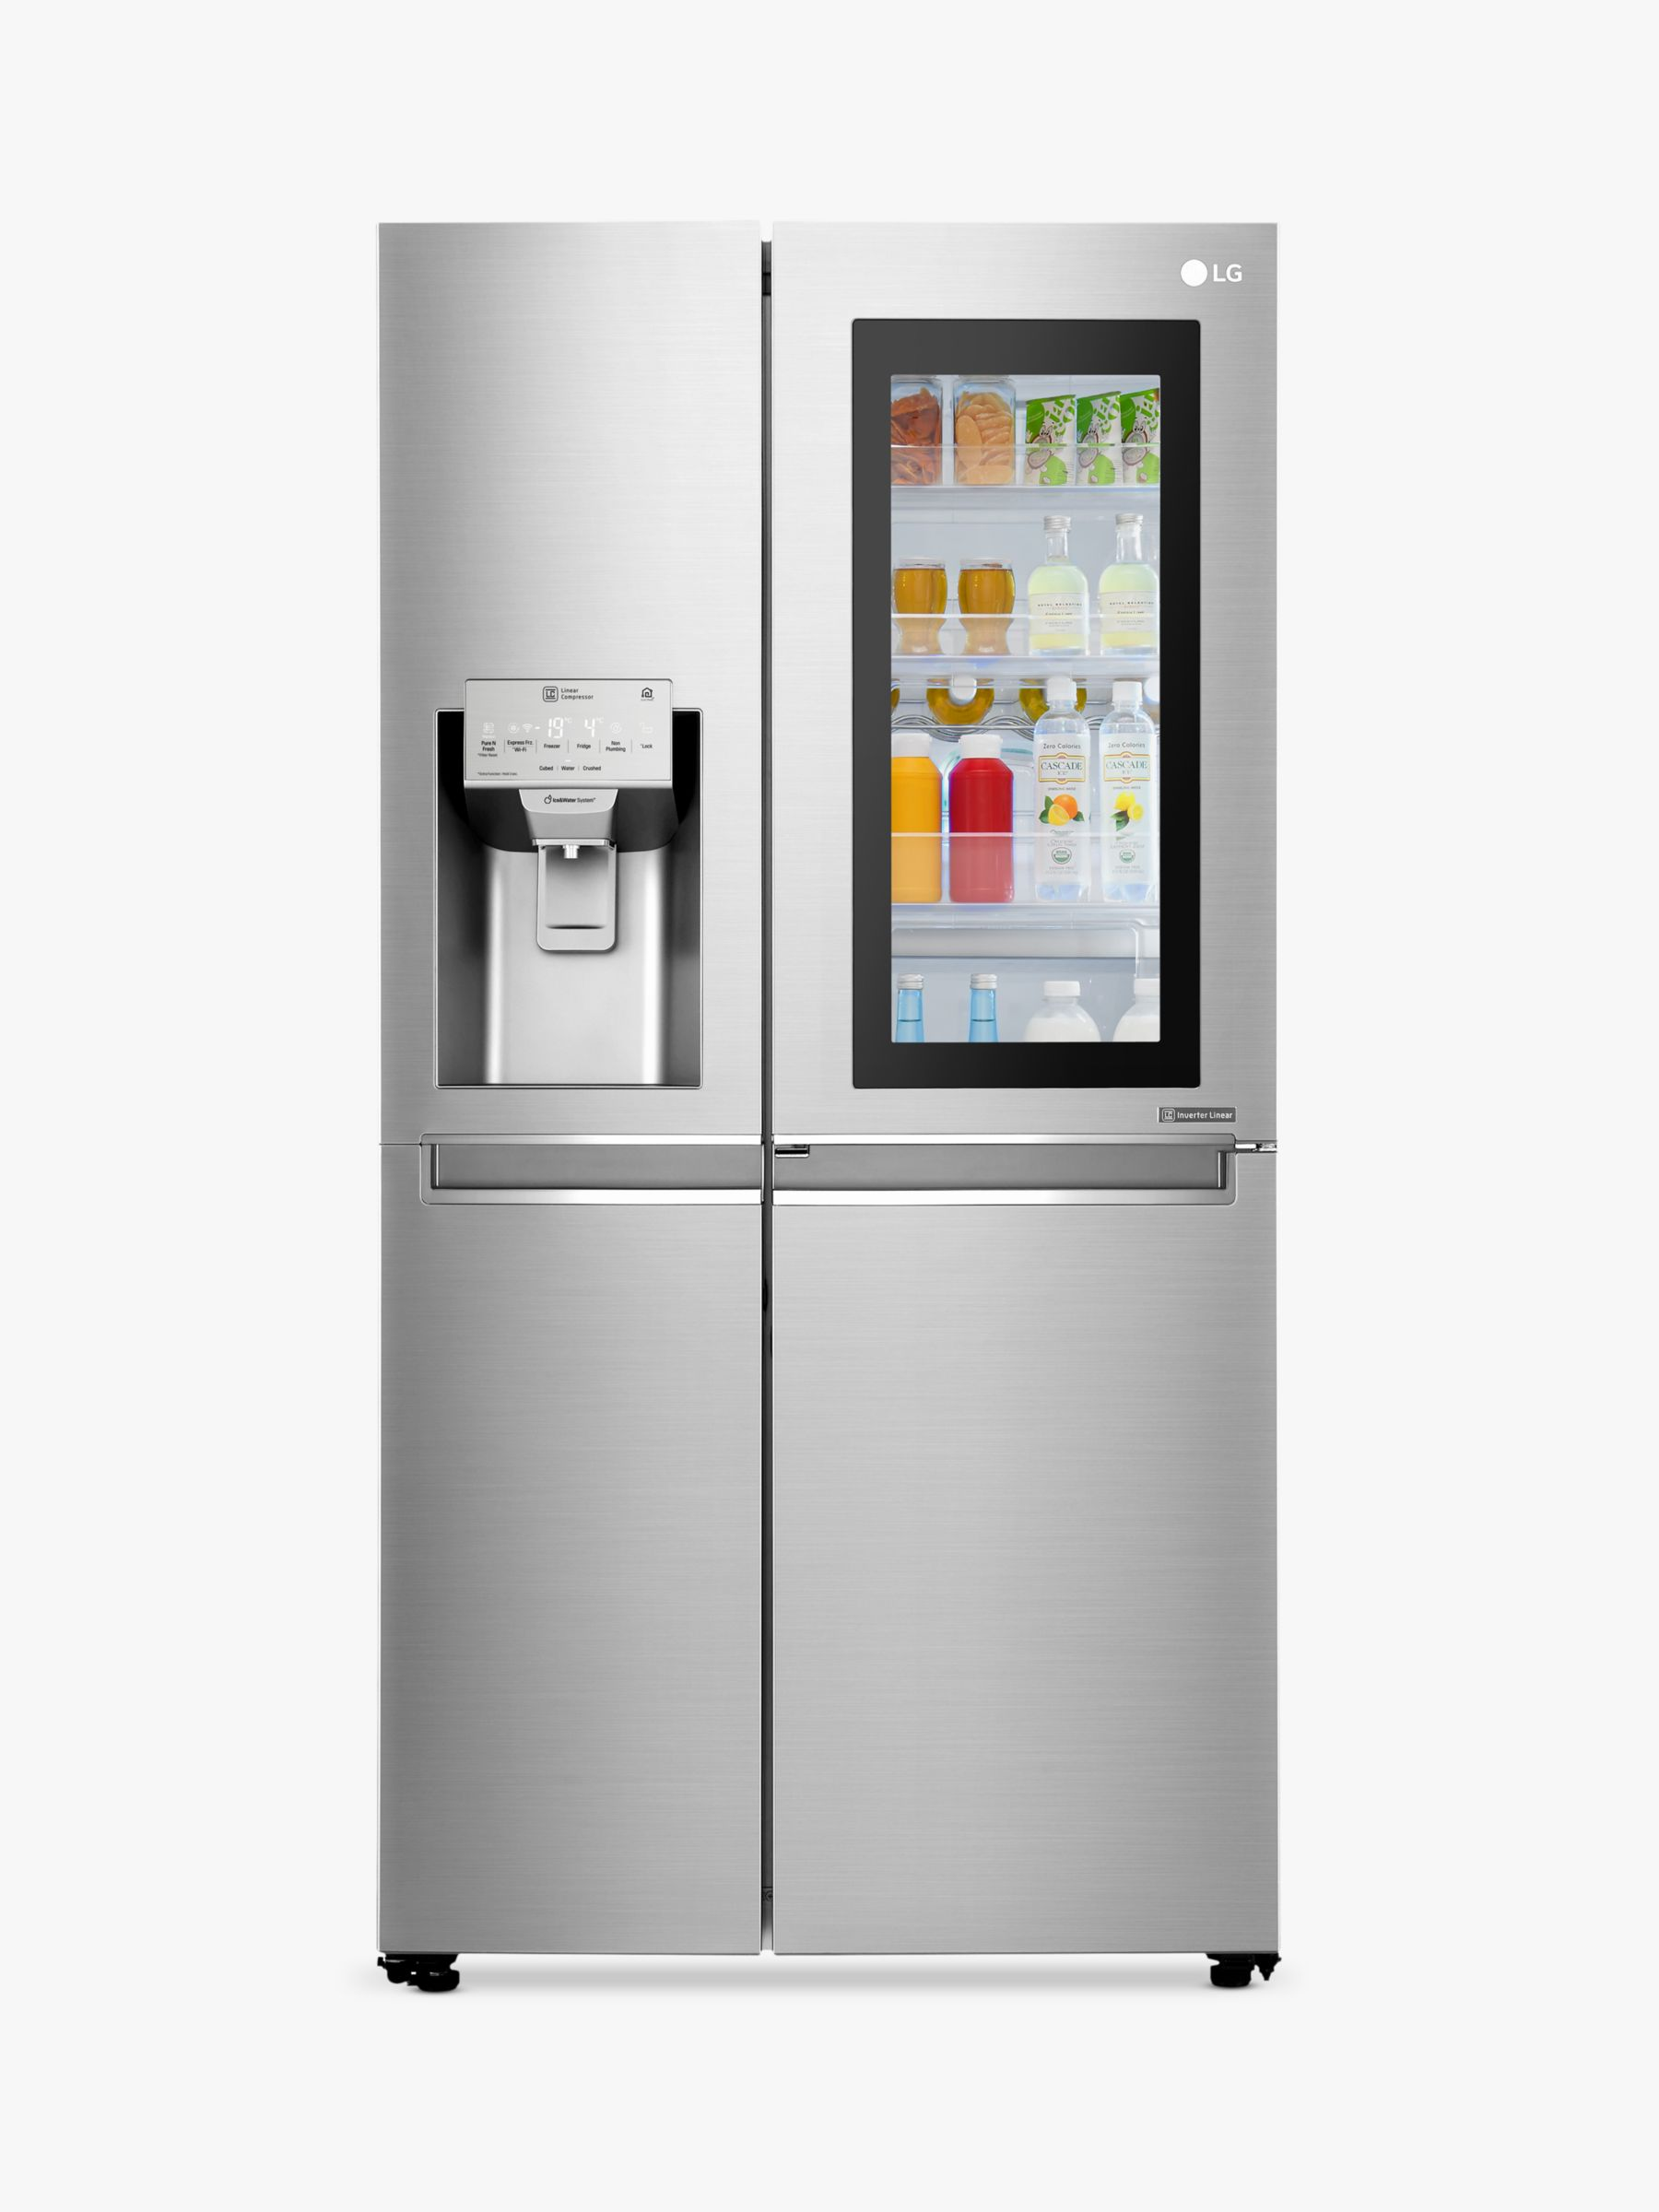 LG LG InstaView GSX961NSVZ American Style Fridge Freezer, A++ Energy Rating, 90cm Wide, Premium Steel